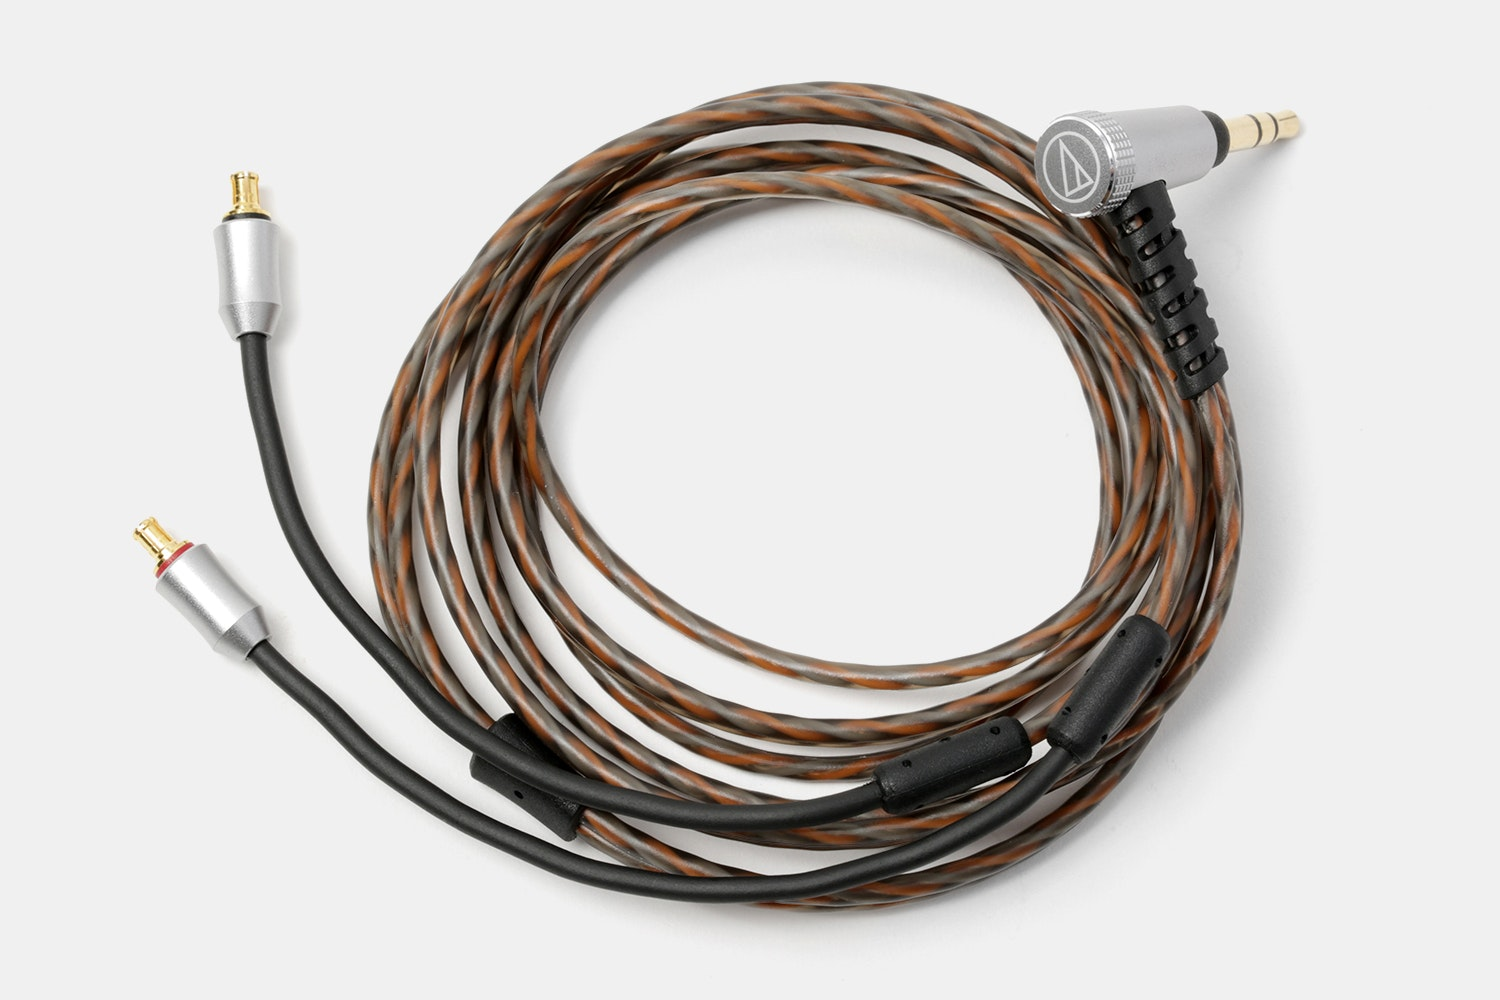 313 cable with 6N-OFC+OFC high-purity copper wire (+ $100)